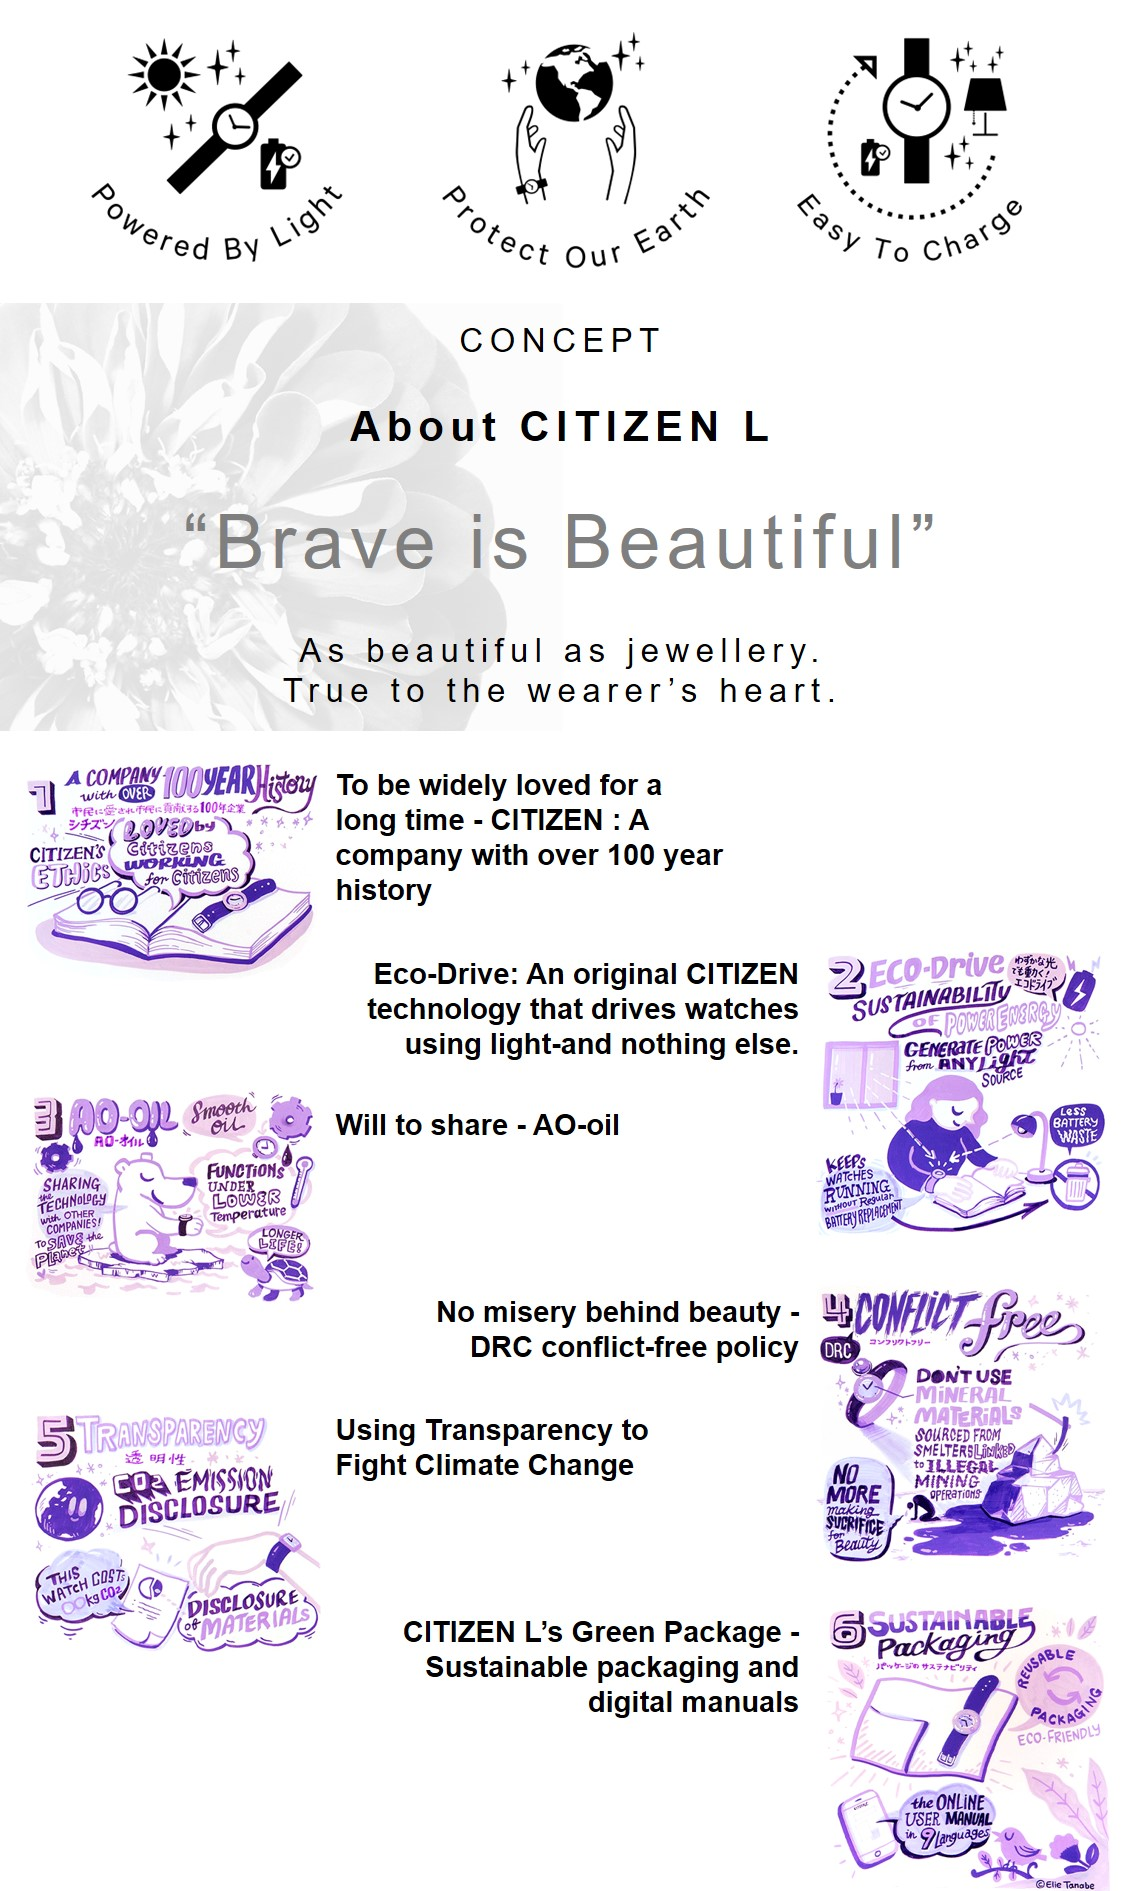 Citizen L brand